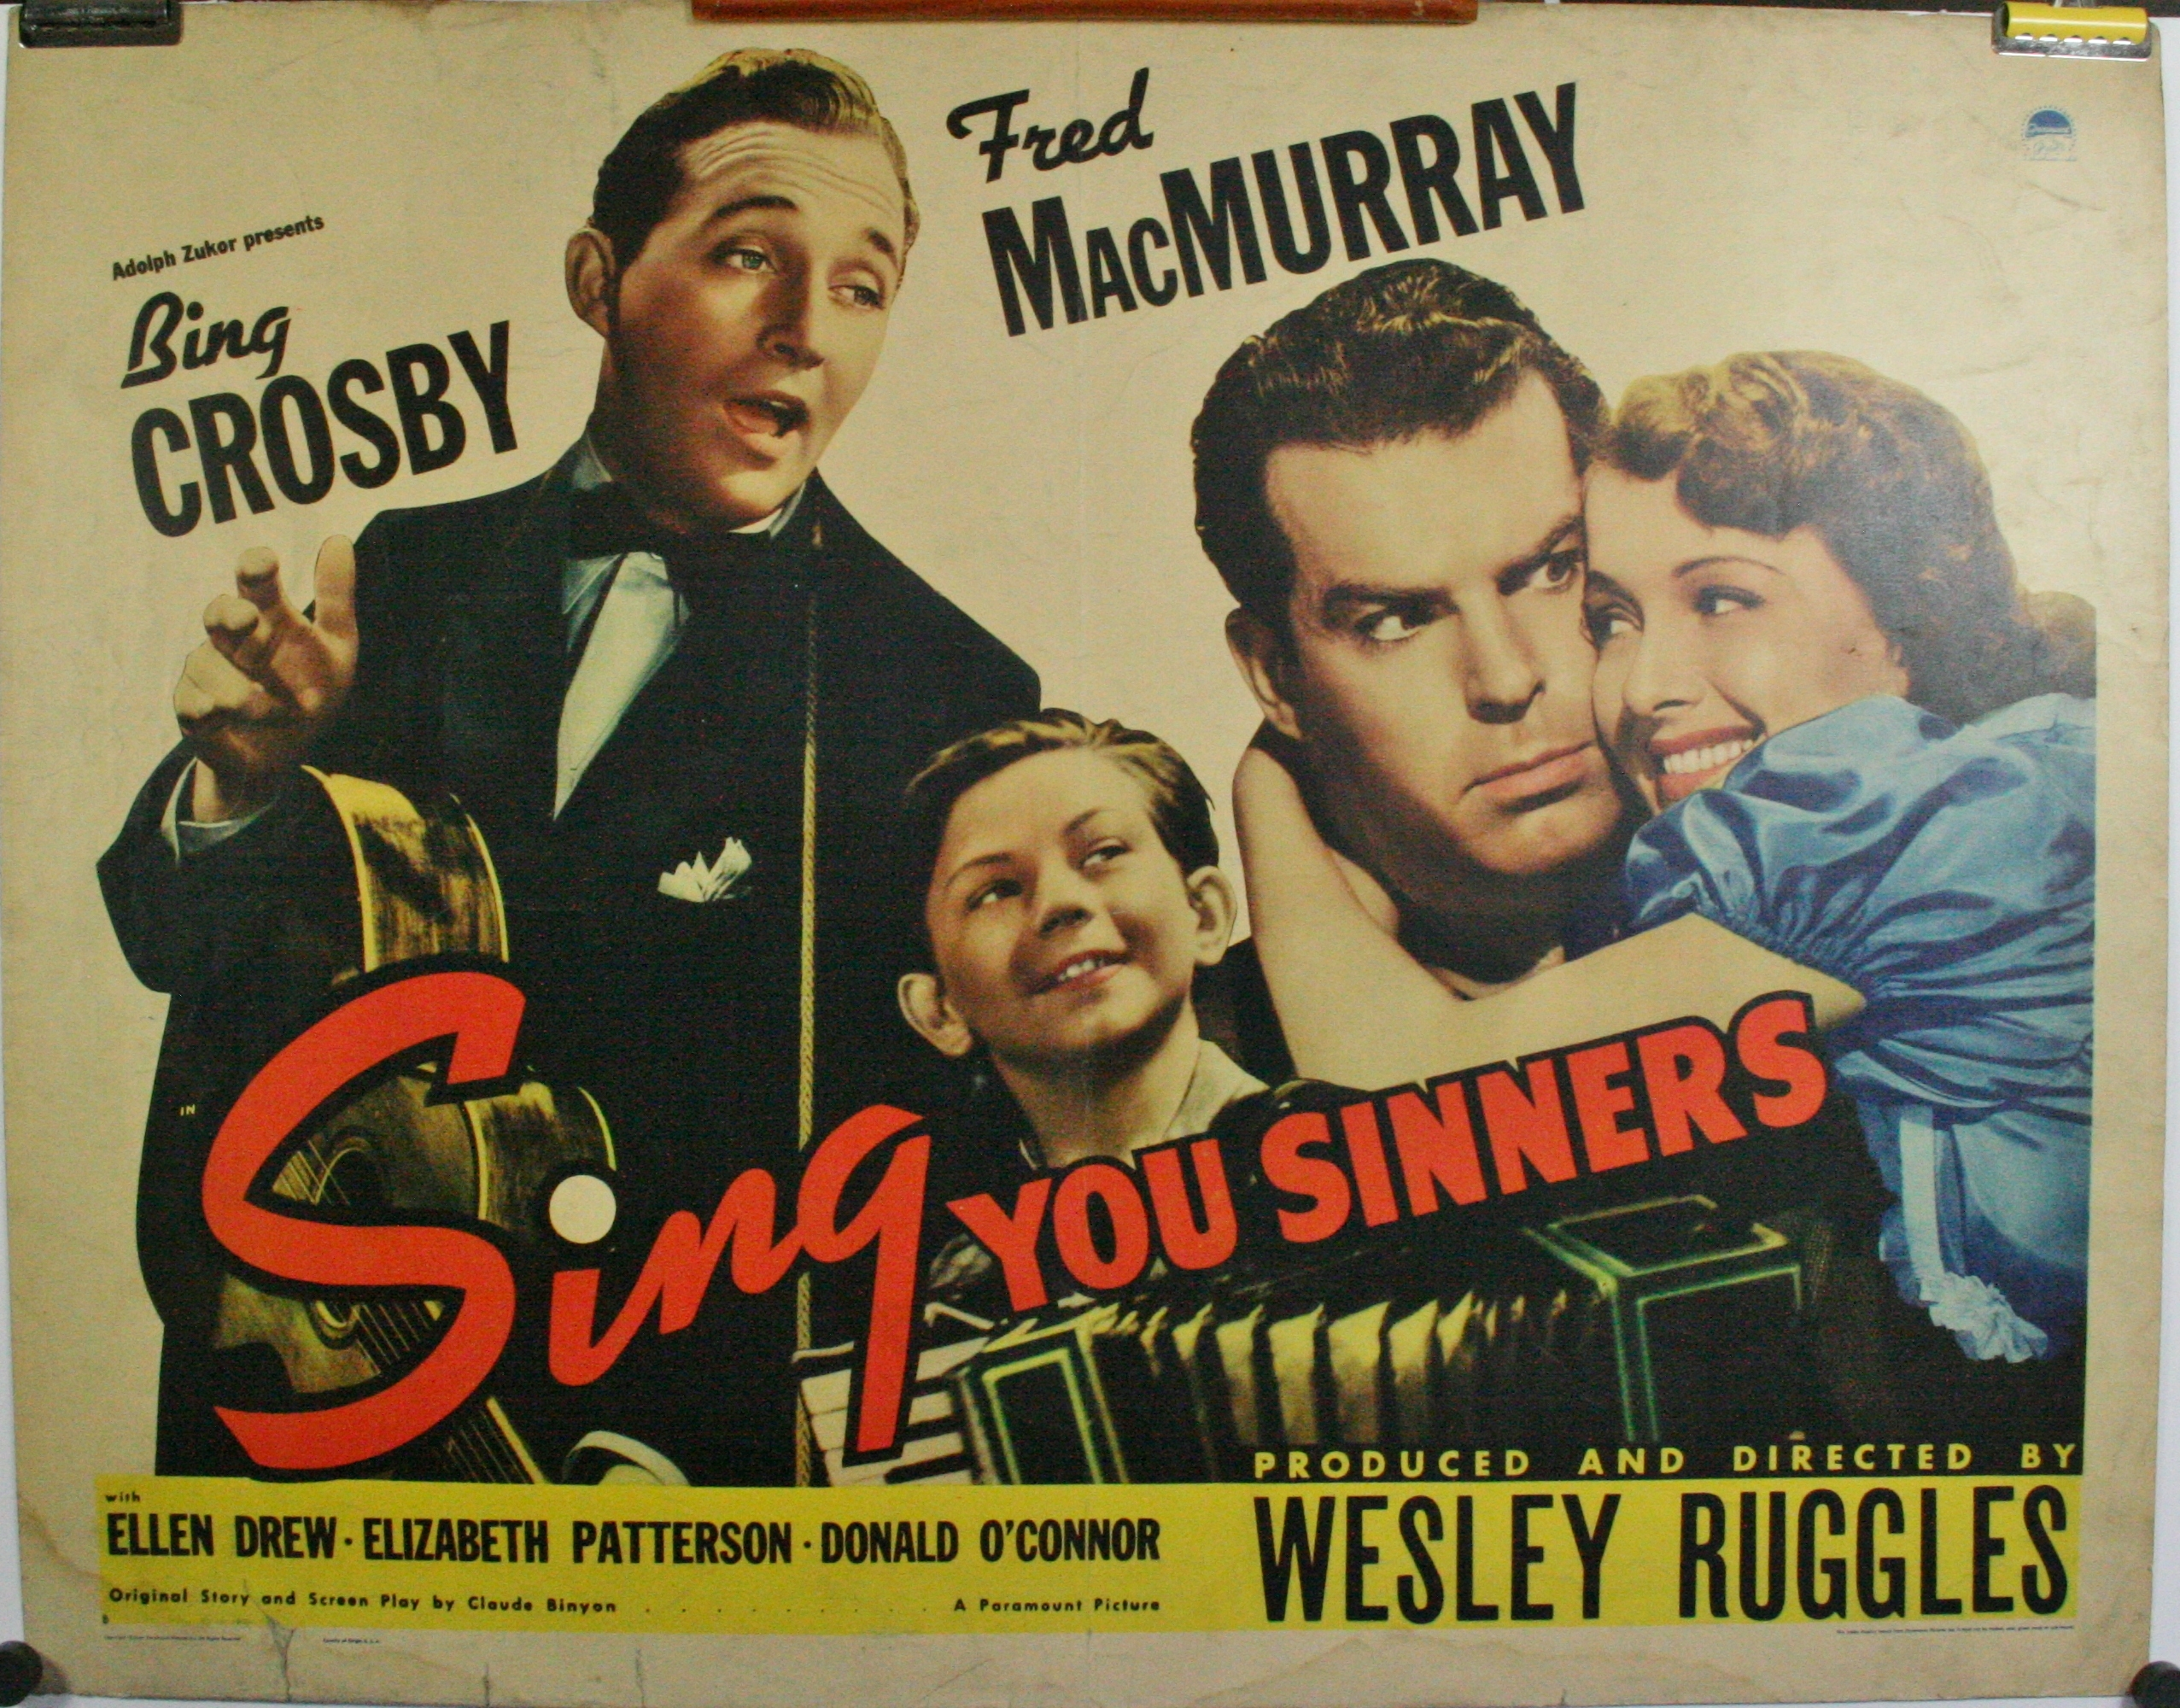 SING YOU SINNERS Original Vintage Bing Crosby Movie Poster - Original  Vintage Movie Posters